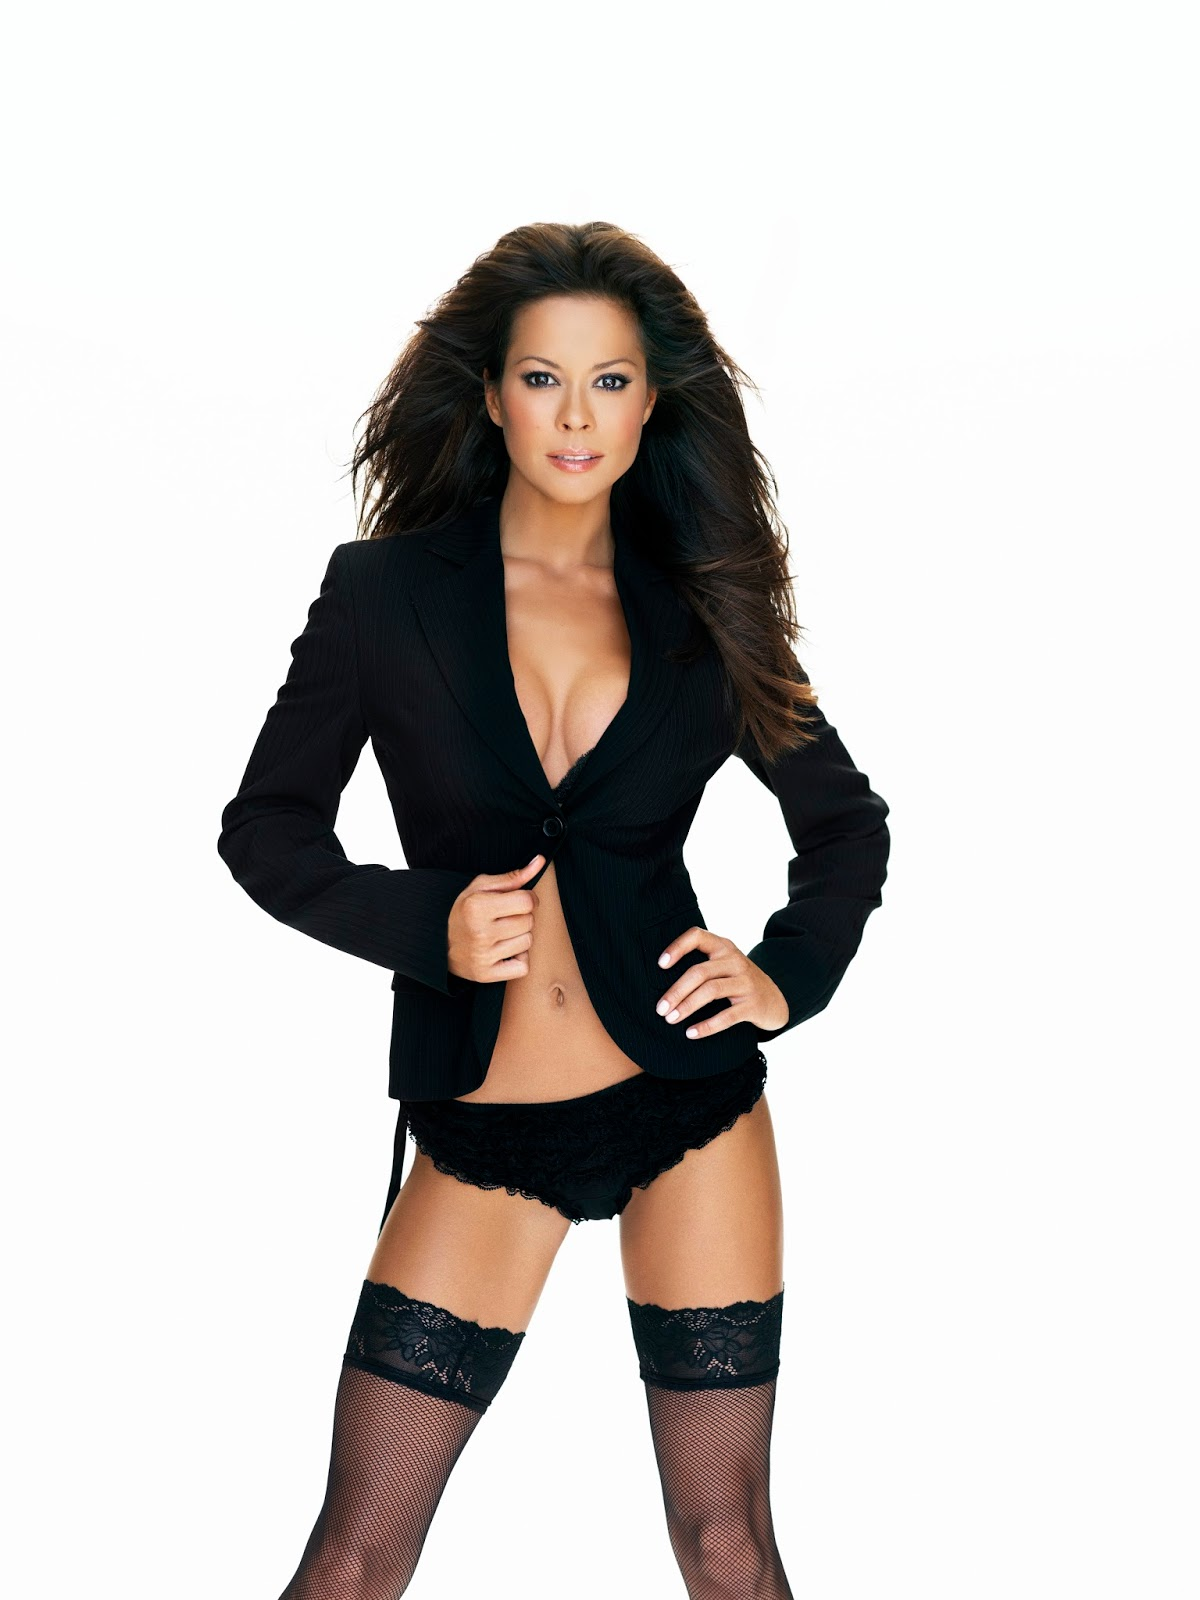 Brooke Burke sexy Chris Cuffaro Photoshoot